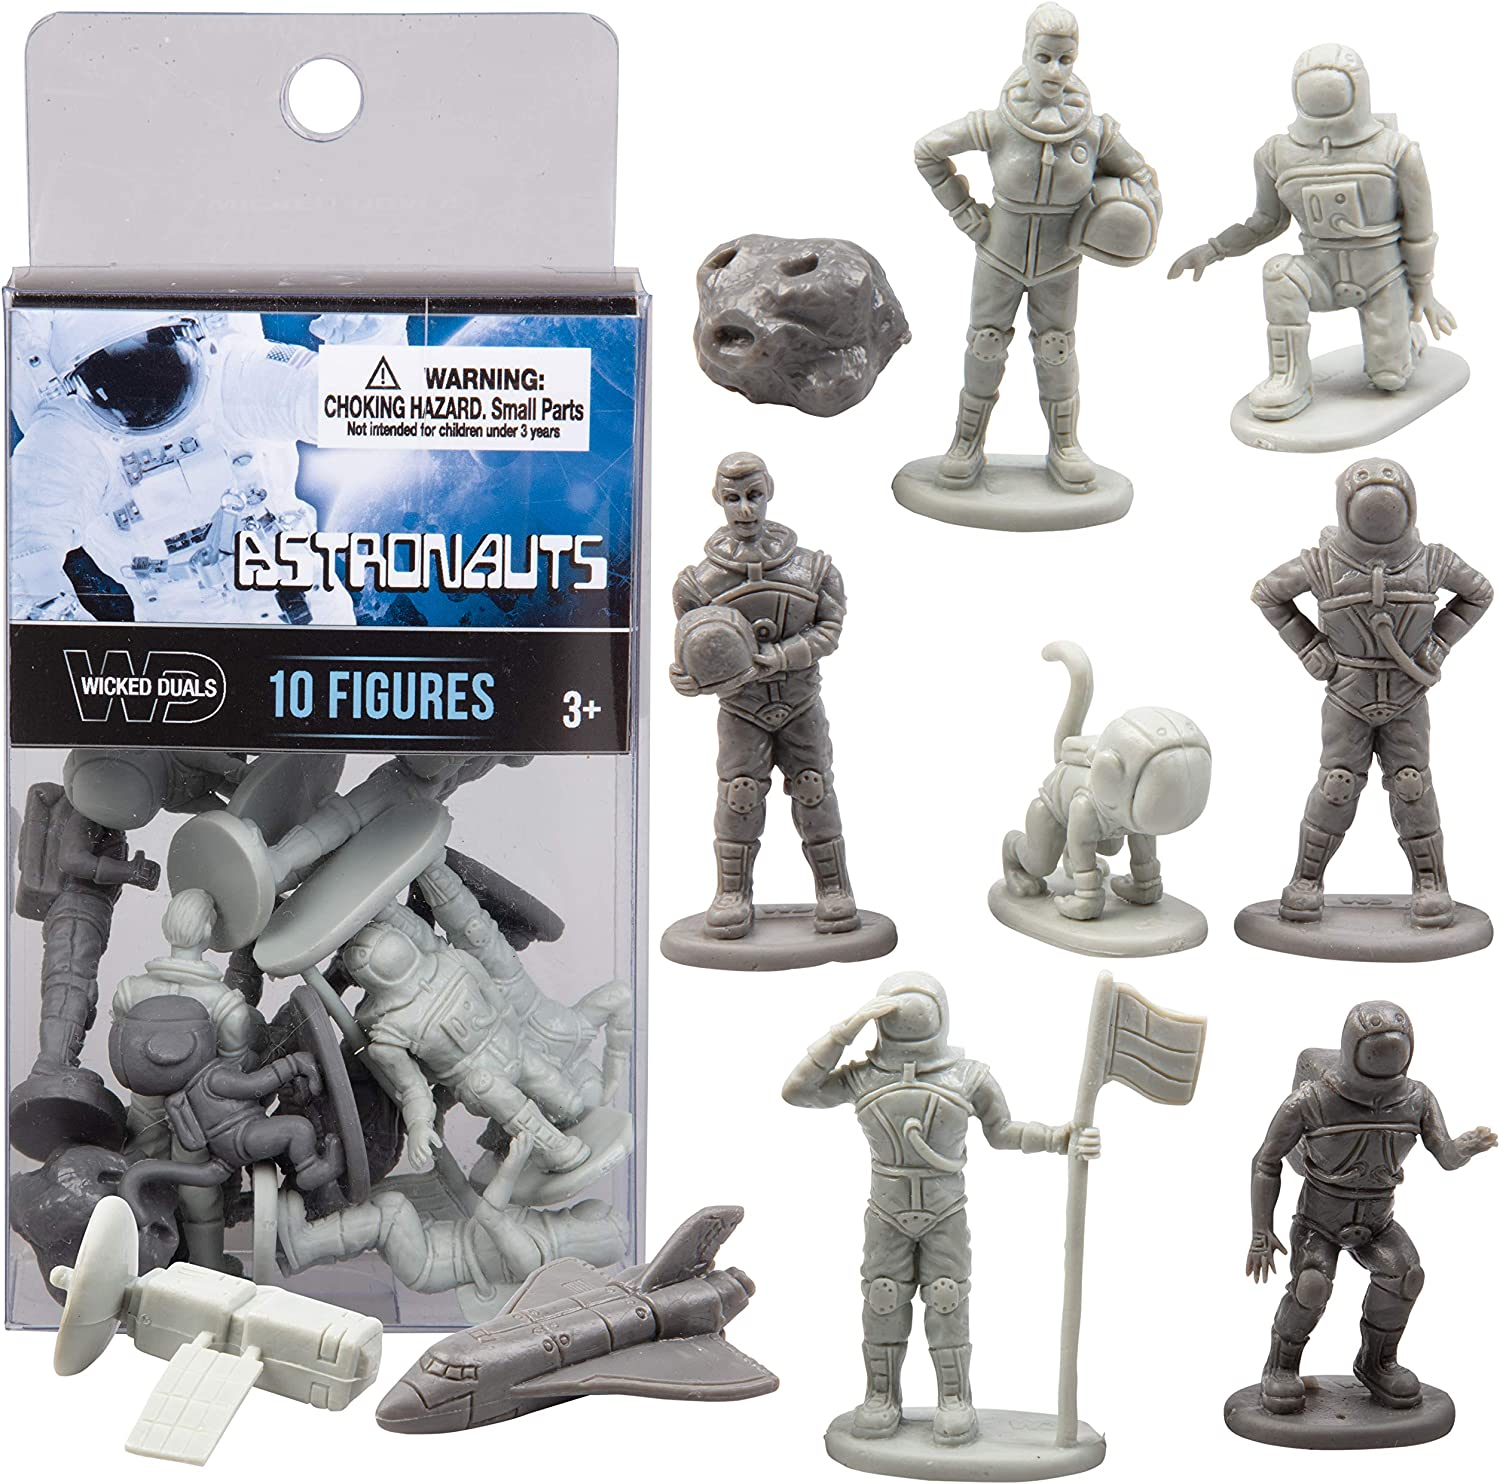 SCS Direct Wicked Duals Mini Astronaut Figures Playset 10 pc Toy Collection - Unique Sculpted Space Action Figures for Party Favors, Dioramas, Decorations and More!